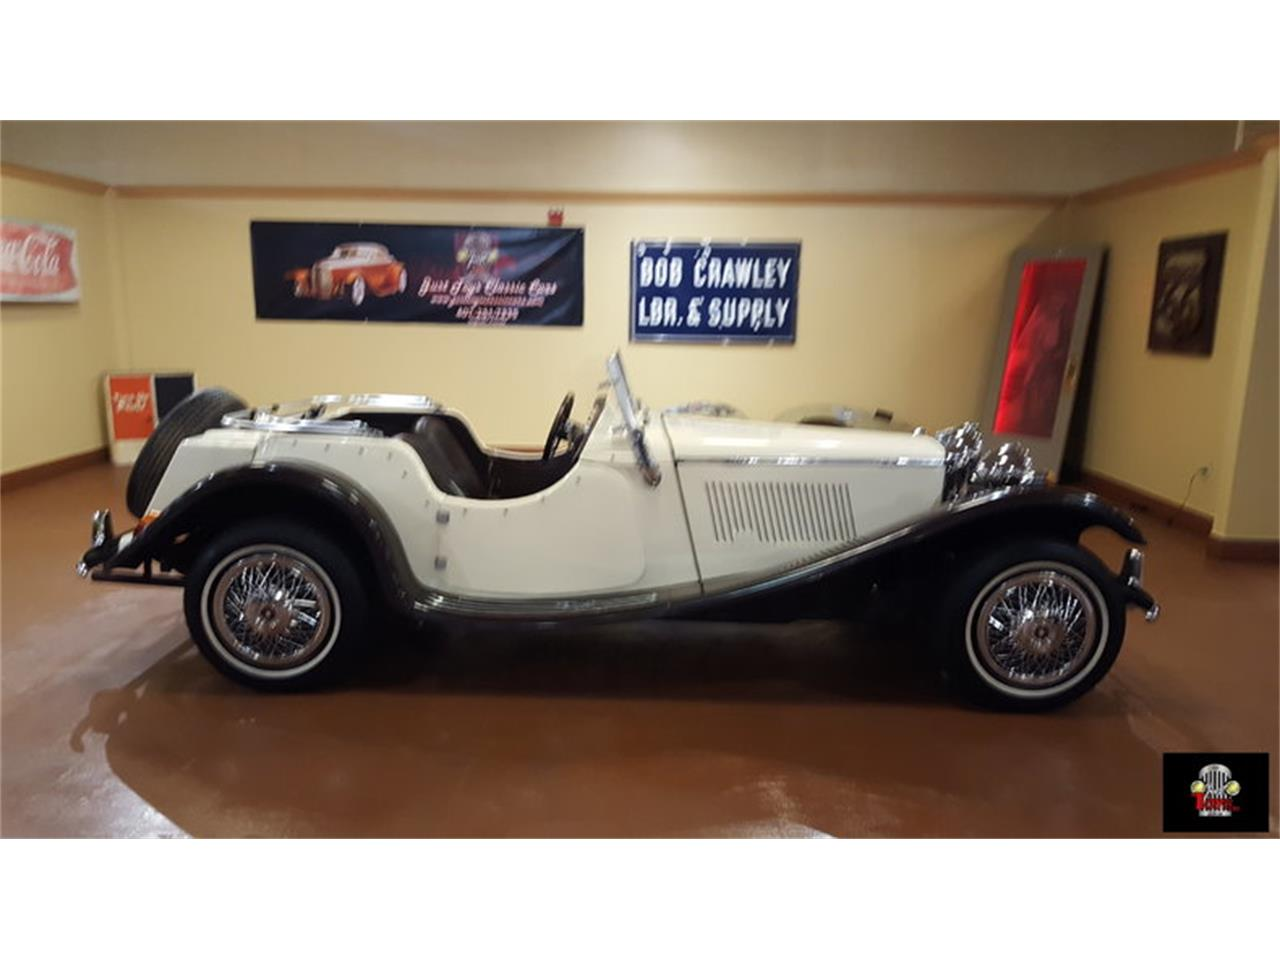 Large Picture of '87 Jaguar SS100 located in Florida - $9,995.00 Offered by Just Toys Classic Cars - KA6C